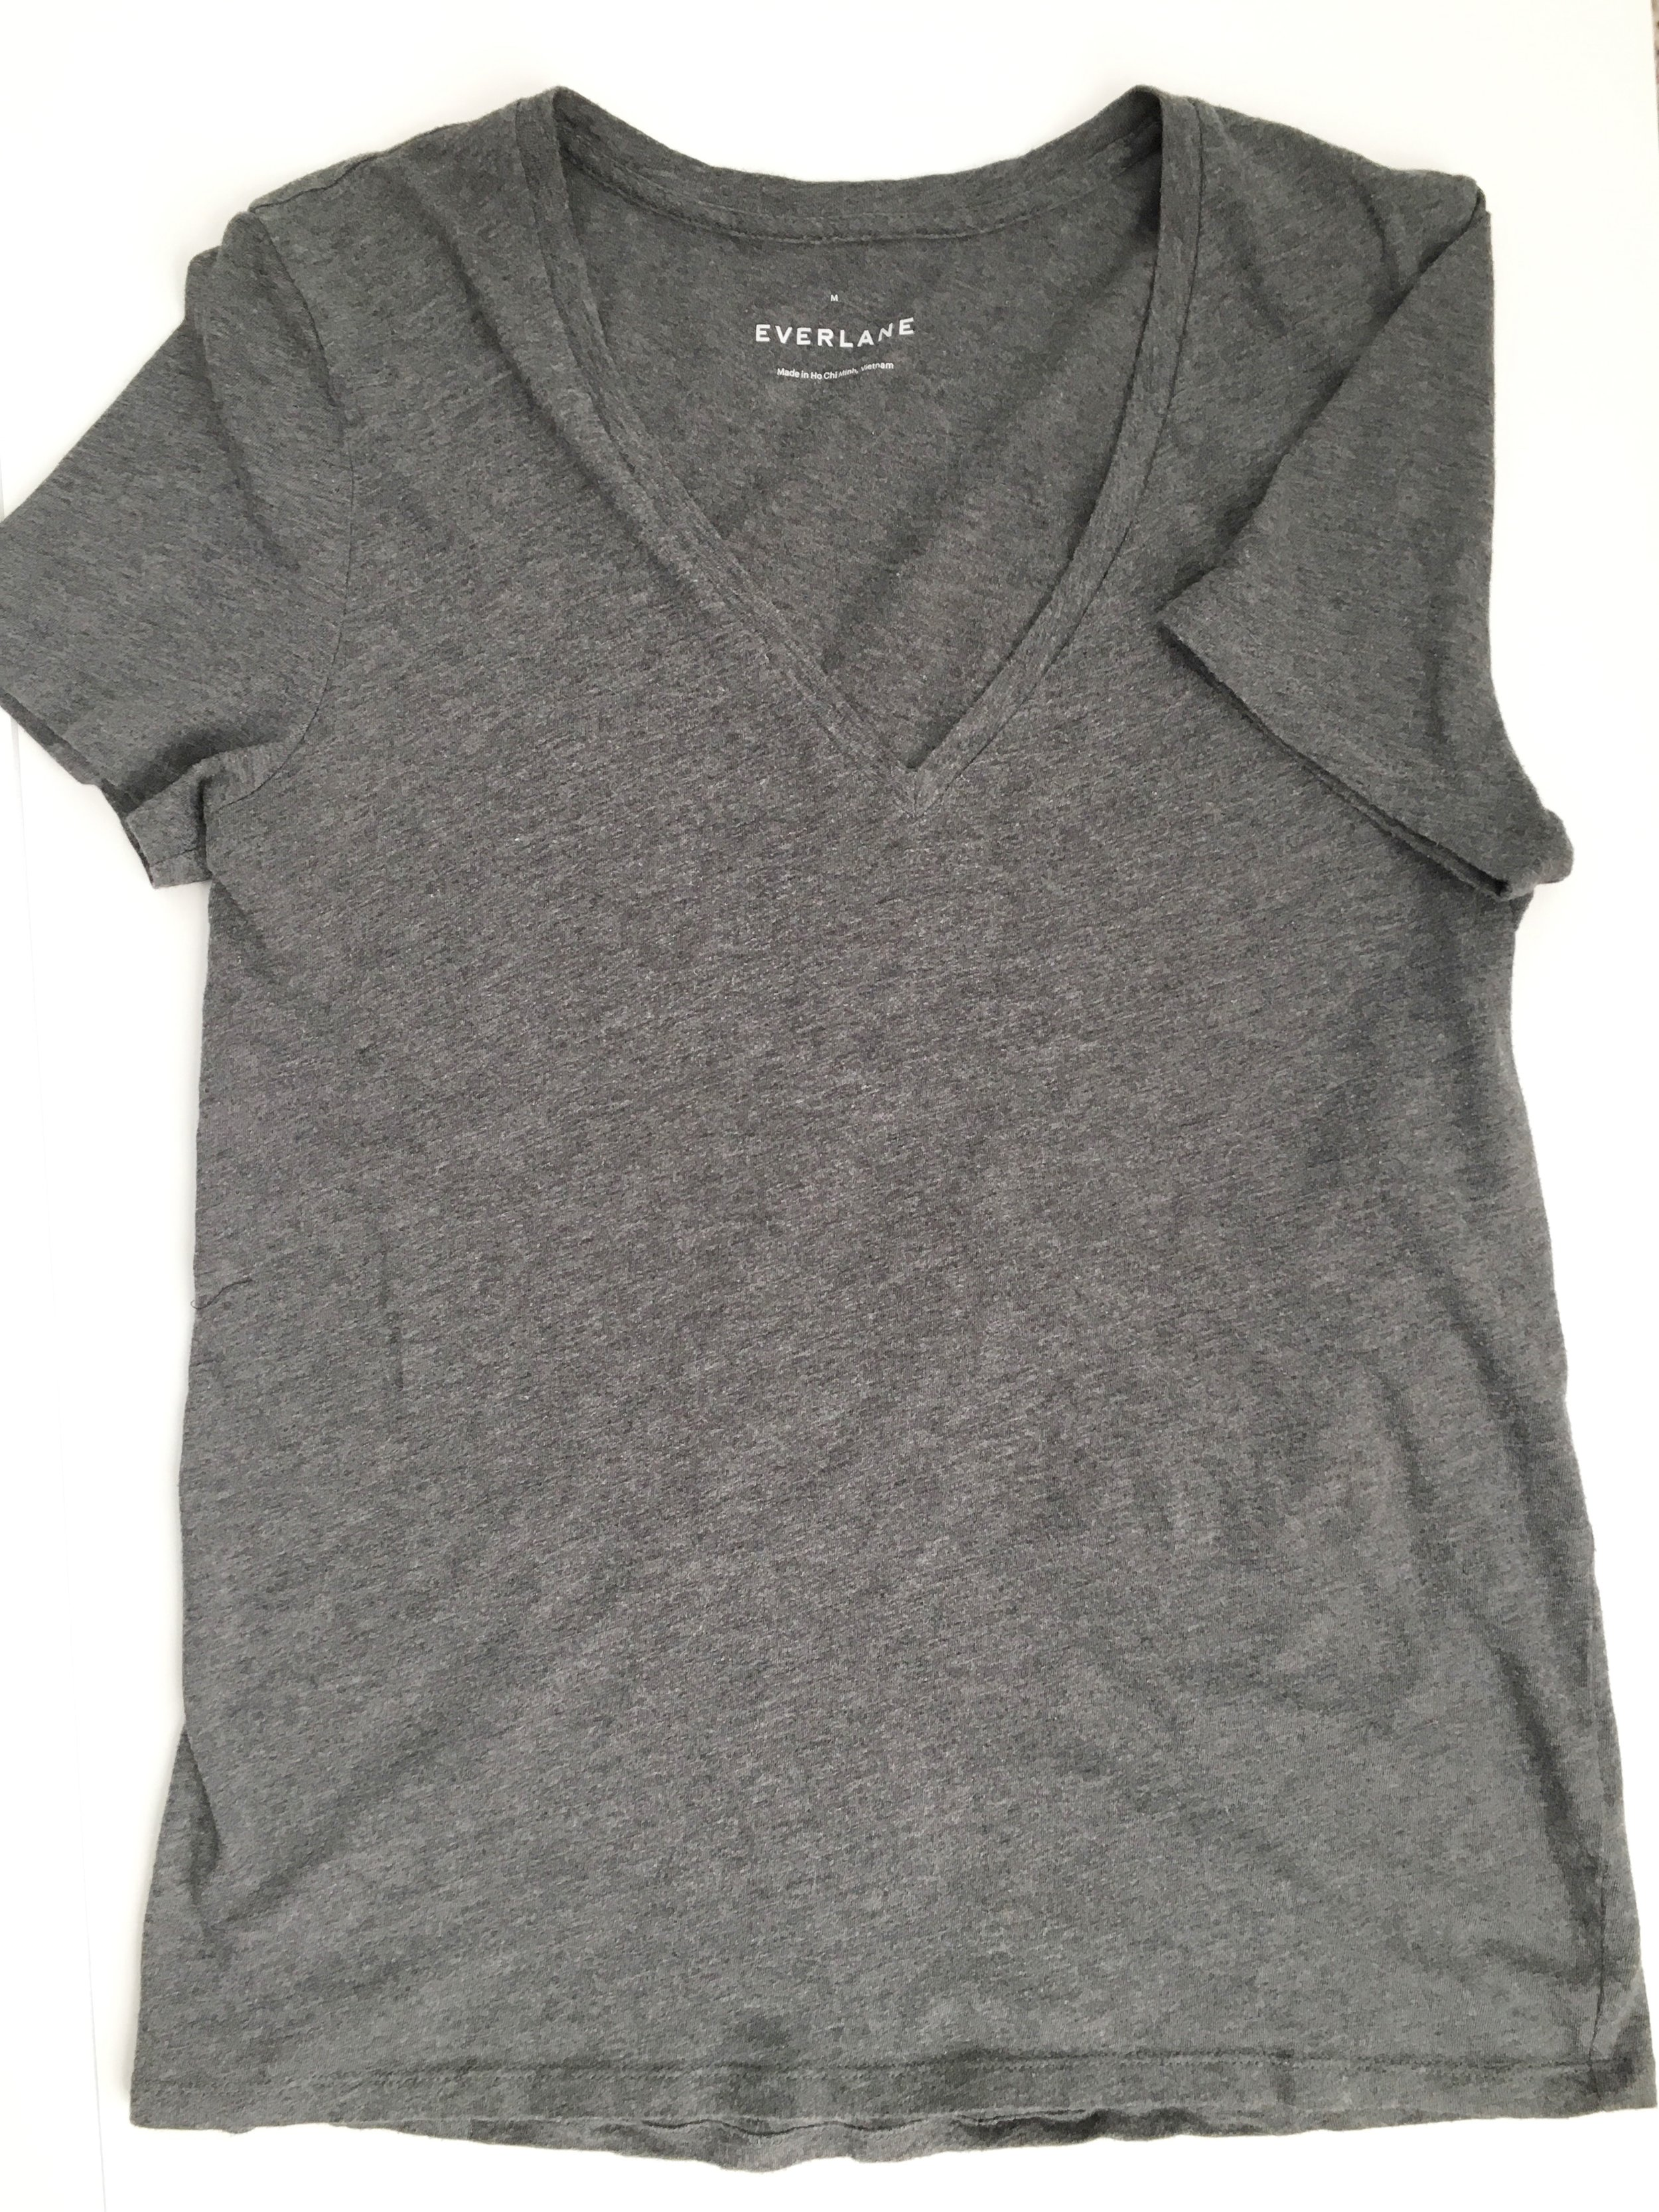 Spring fashion style: 10x10 challenge (ethical brand Everlane)